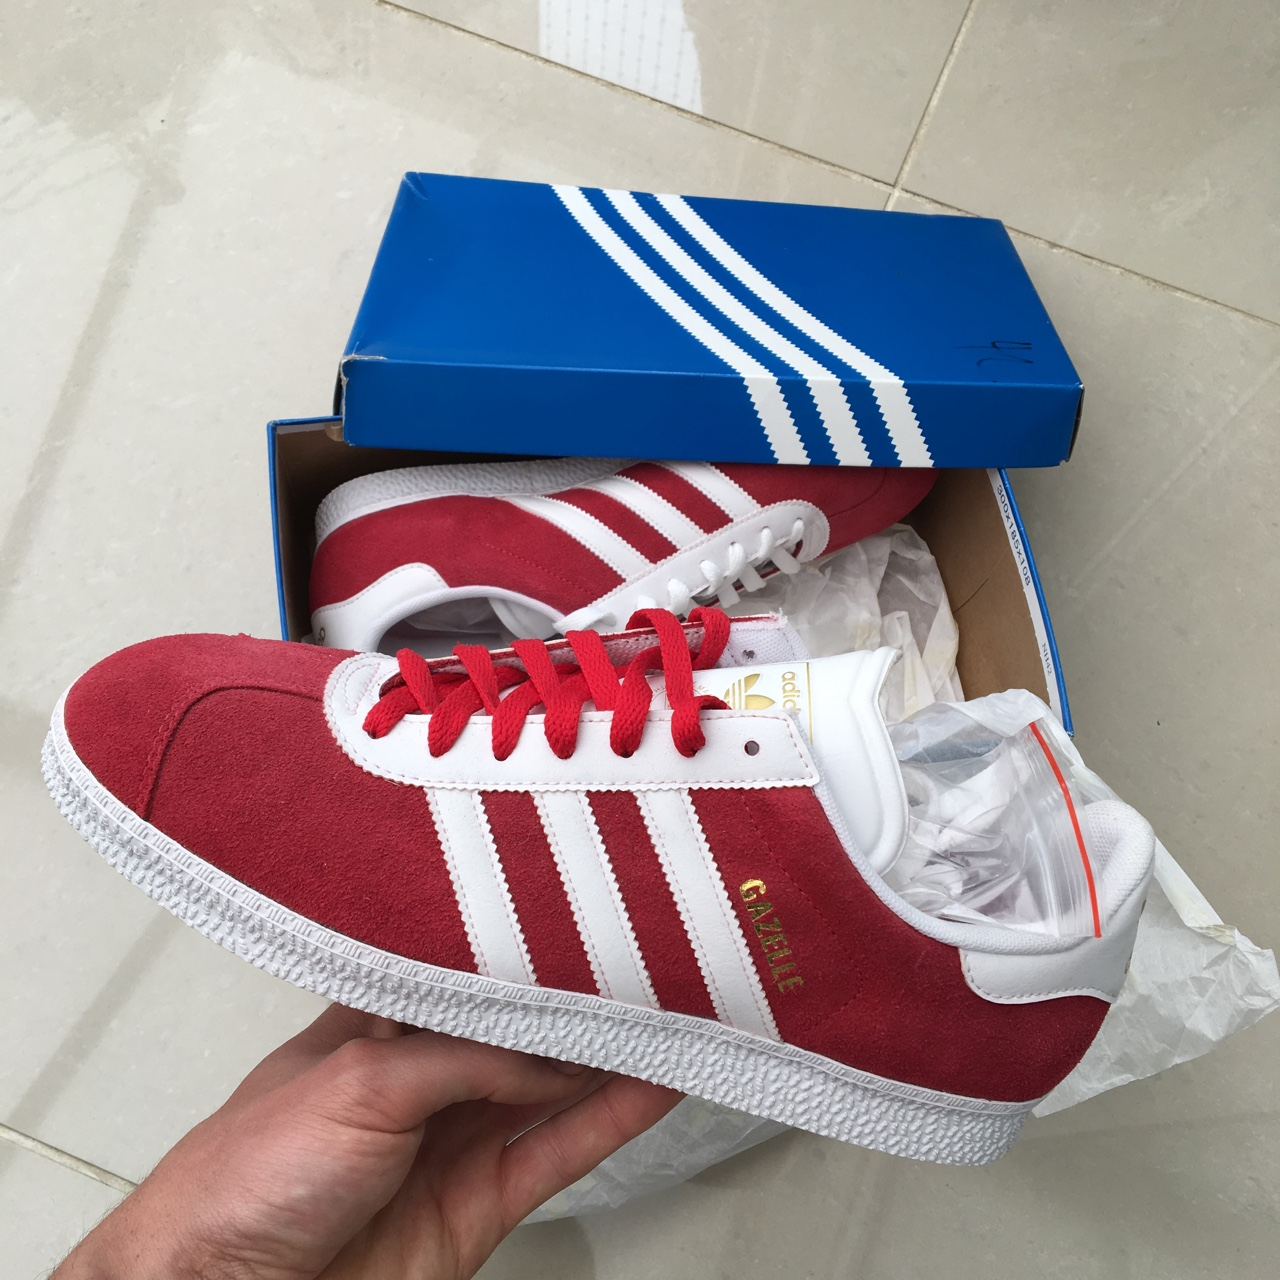 Brand new Adidas Gazelle Suede Trainers. Red & Depop